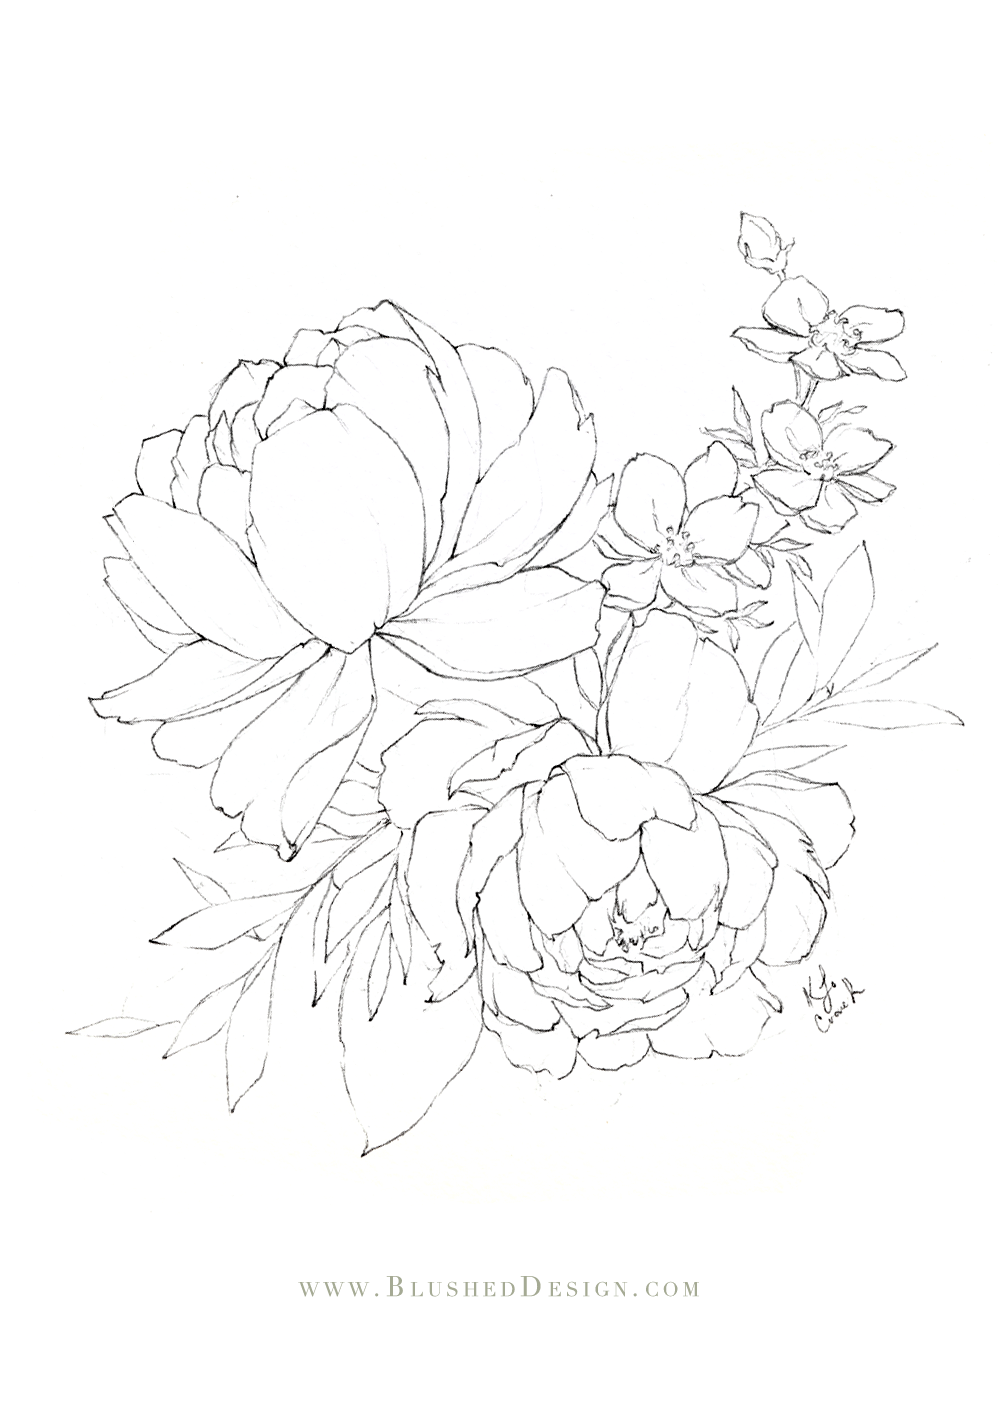 Beautiful peony illustration featuring two large blooms and a few other delicate botanicals within the bouquet.  Learn to draw beautiful illustrations like this by taking the Floral Drawing Challenge by Blushed Design. #flowerdrawing #floraldrawingchallenge #botanicaldrawing #botanicalillustration